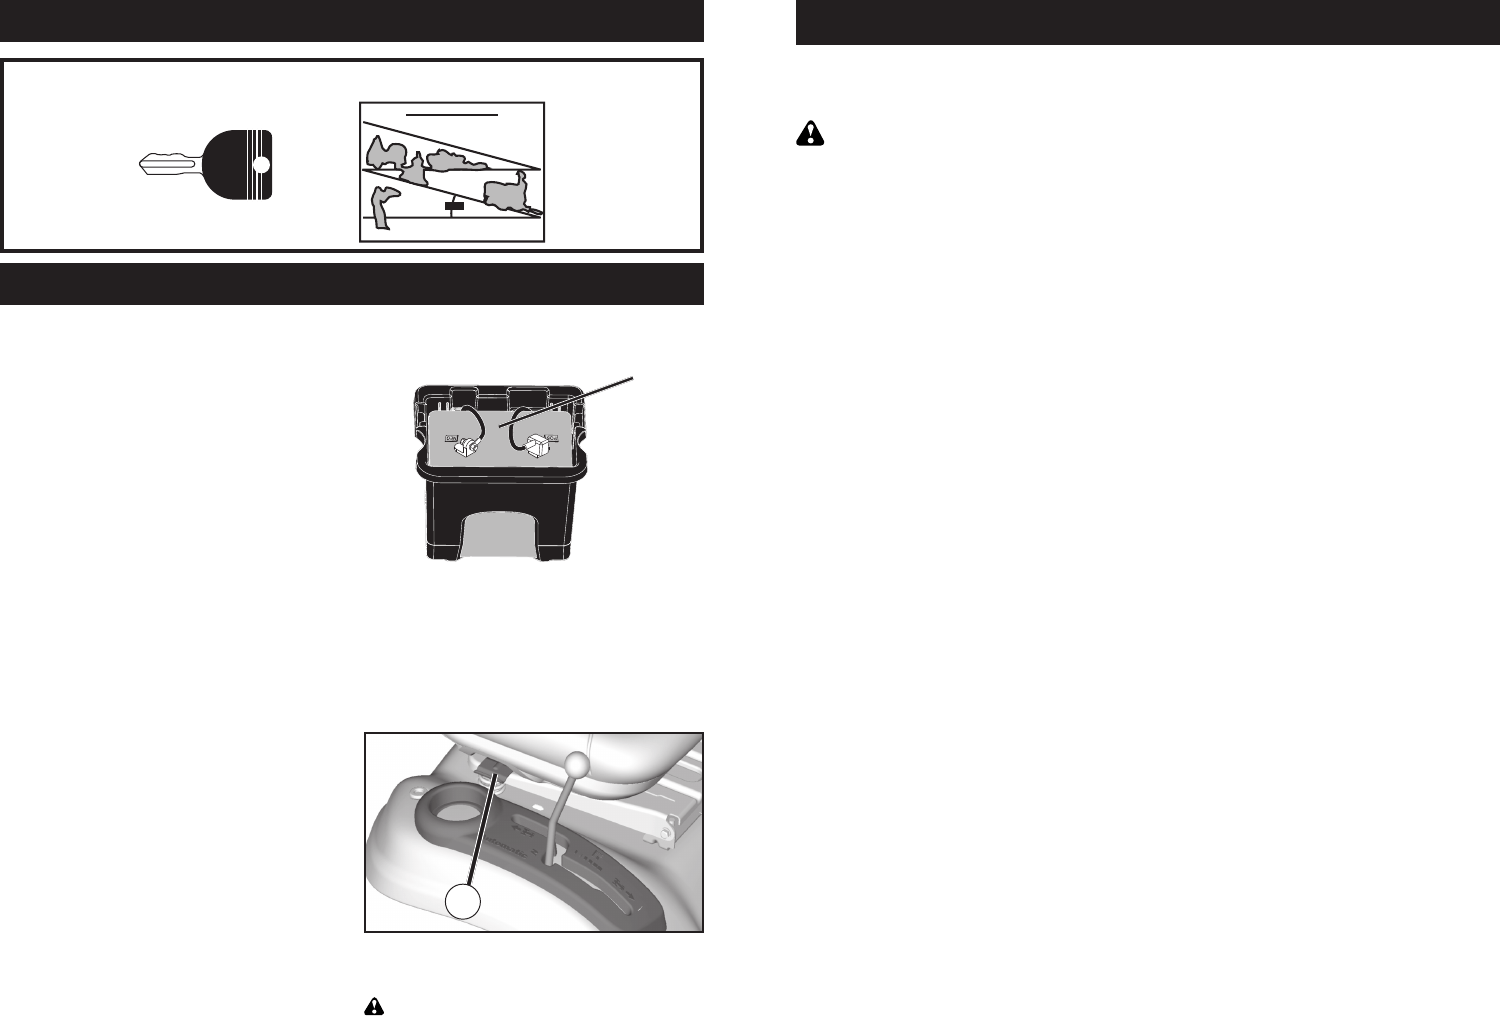 Page 27 of Craftsman Lawn Mower 917.28851 User Guide